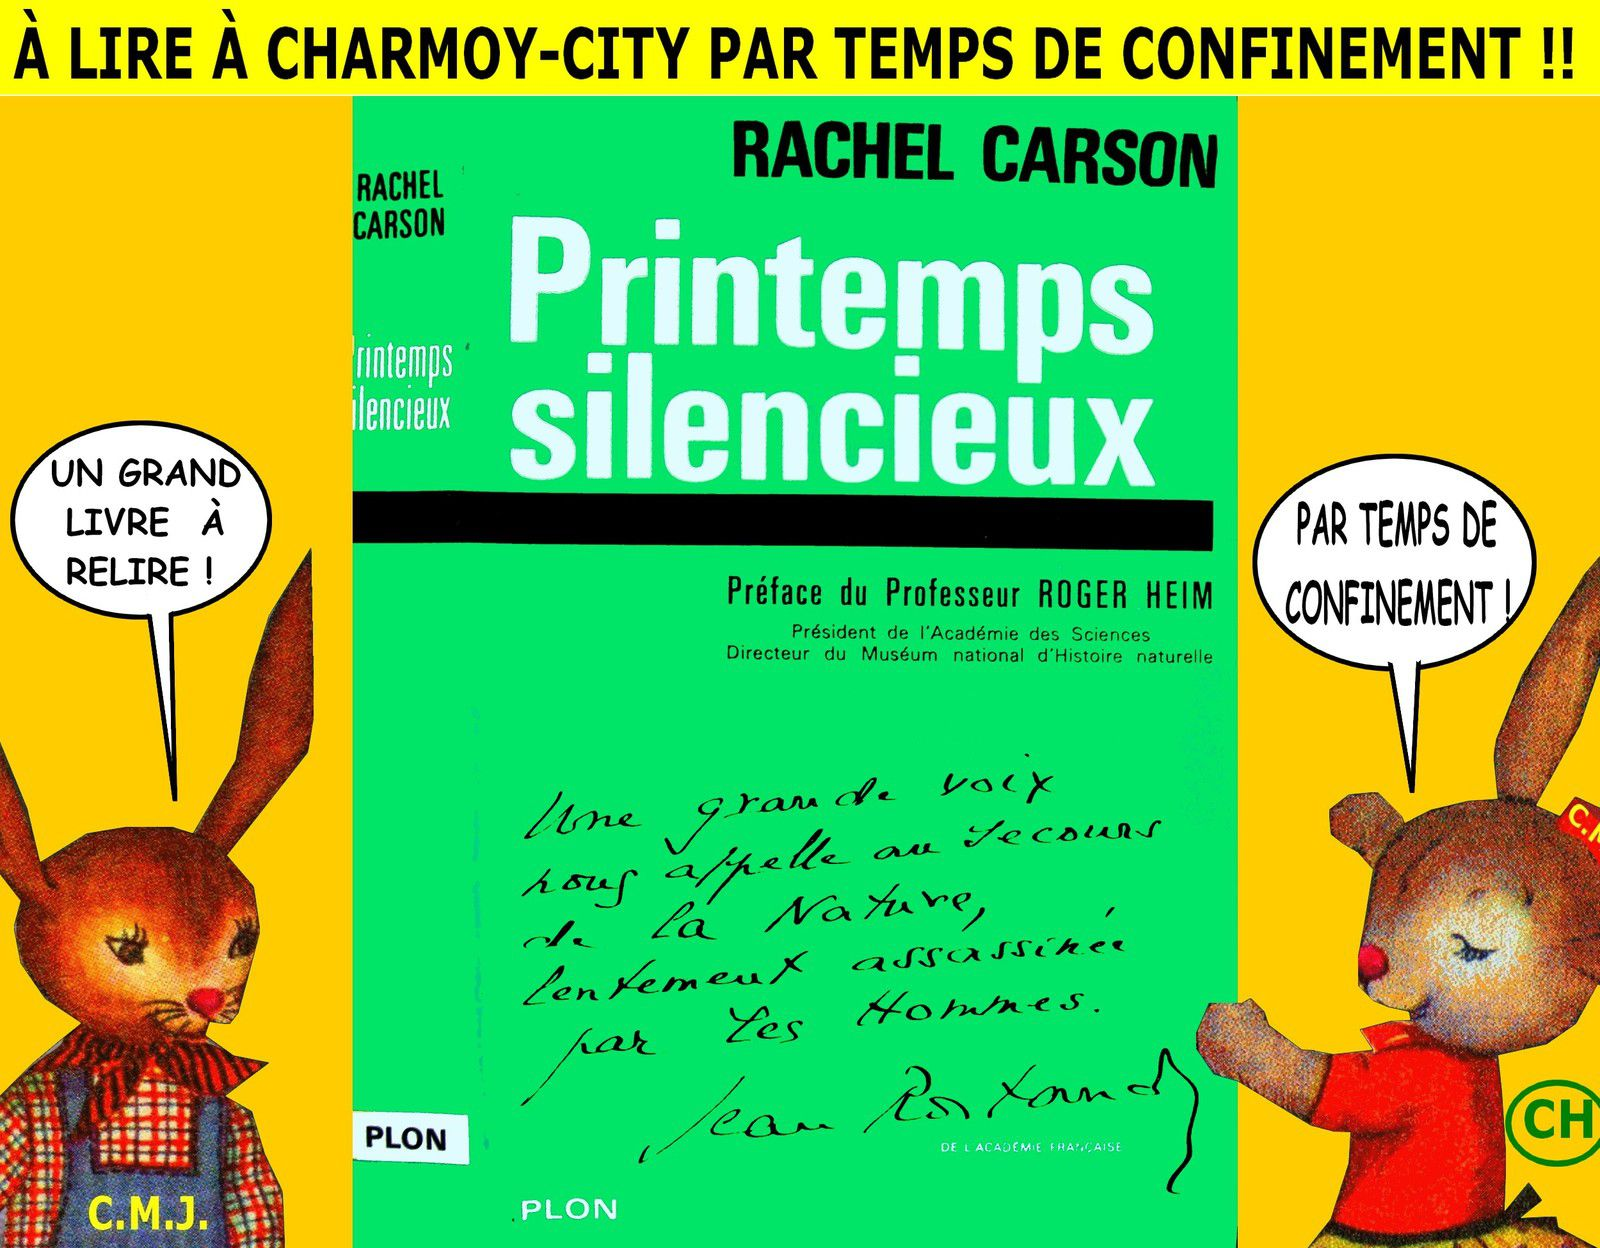 À lire à Charmoy-City par temps de confinement !!.jpg